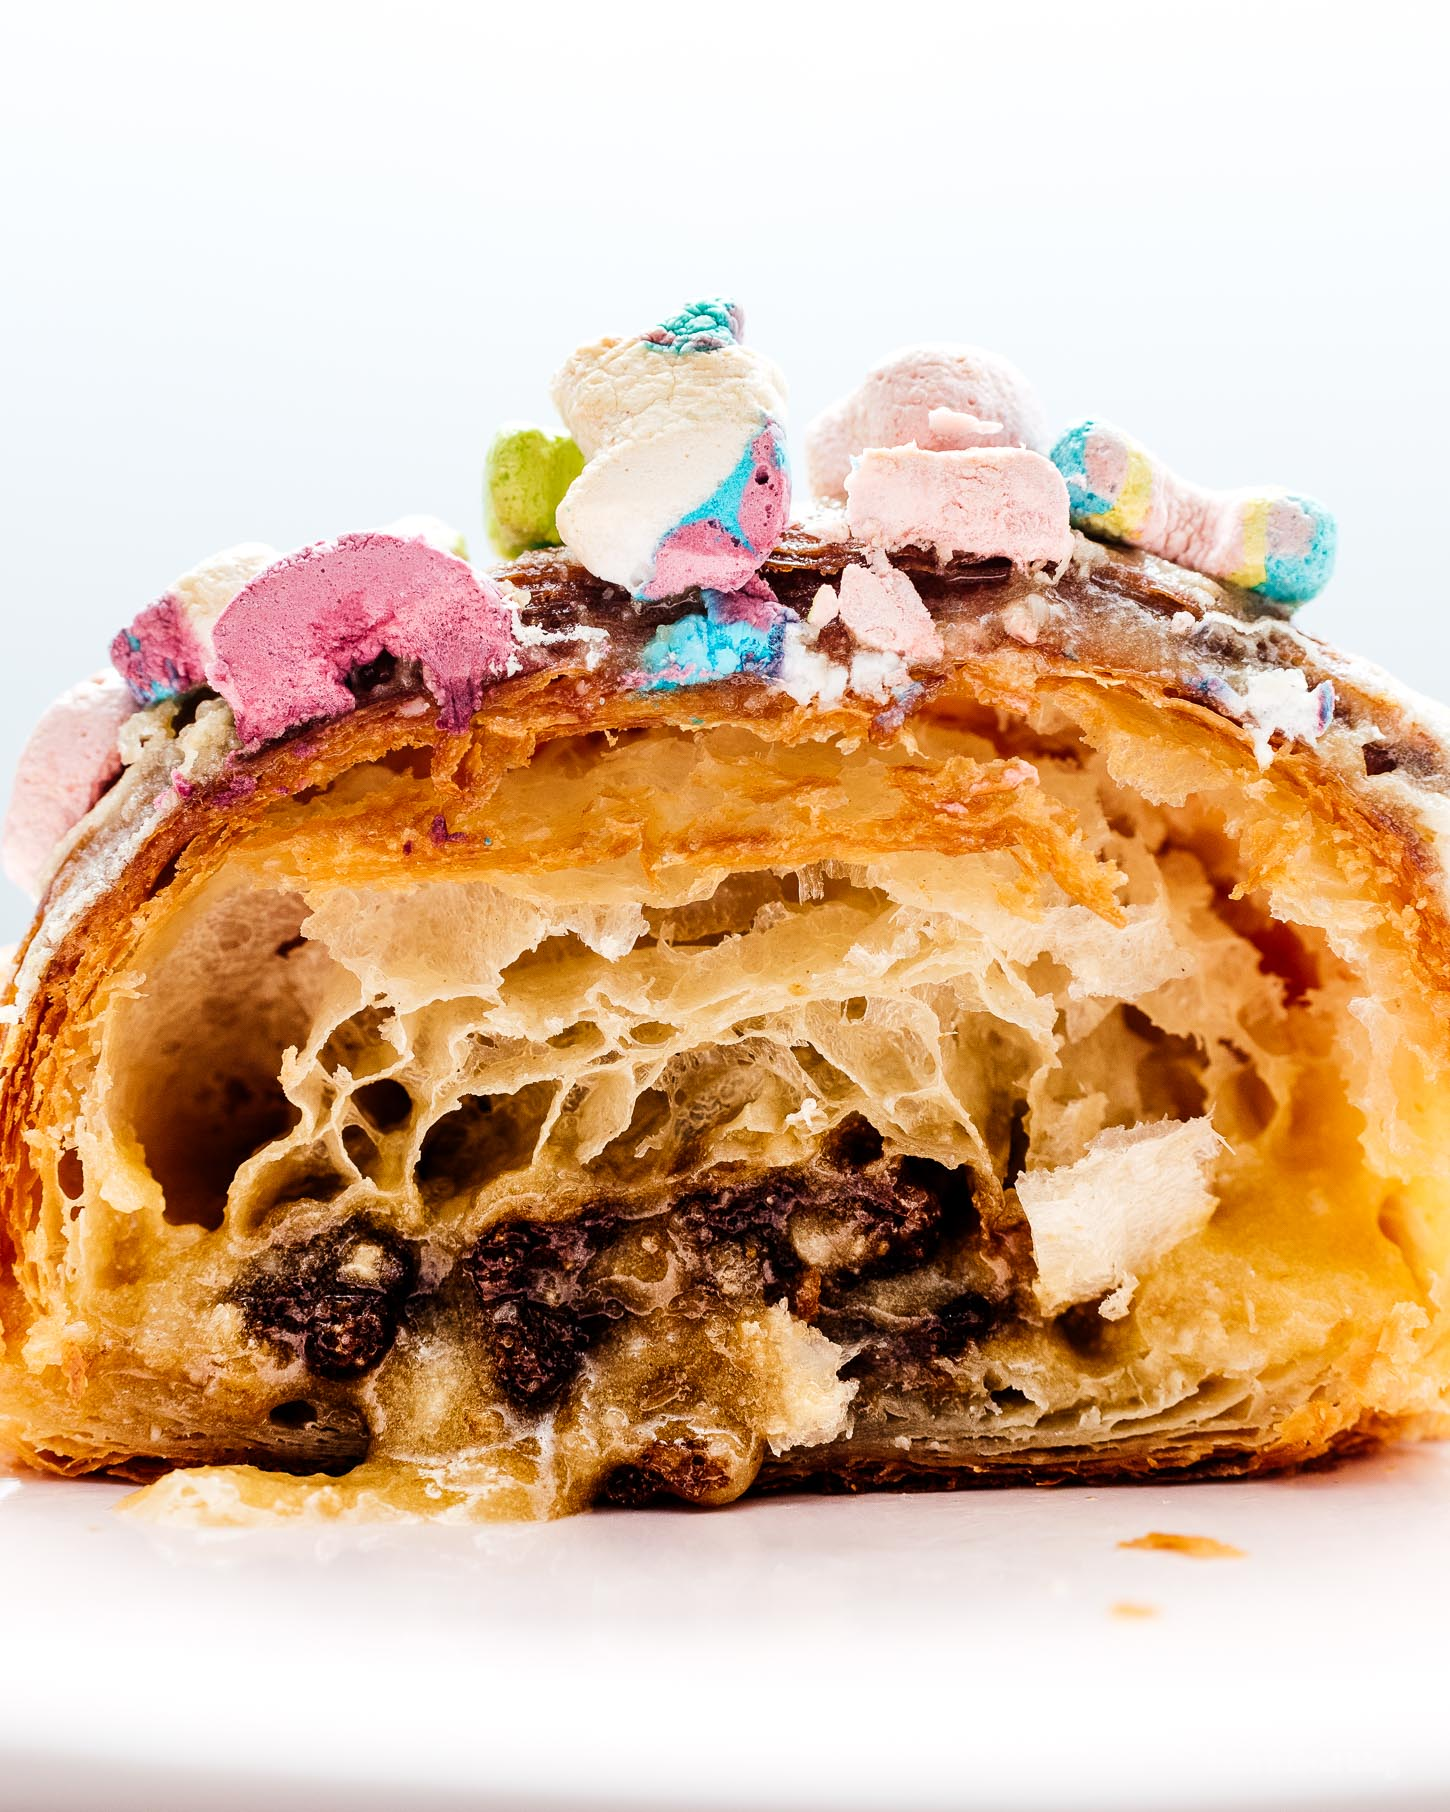 How to Make a Twice Baked Lucky Charms Almond Croissant | www.iamafoodblog.com